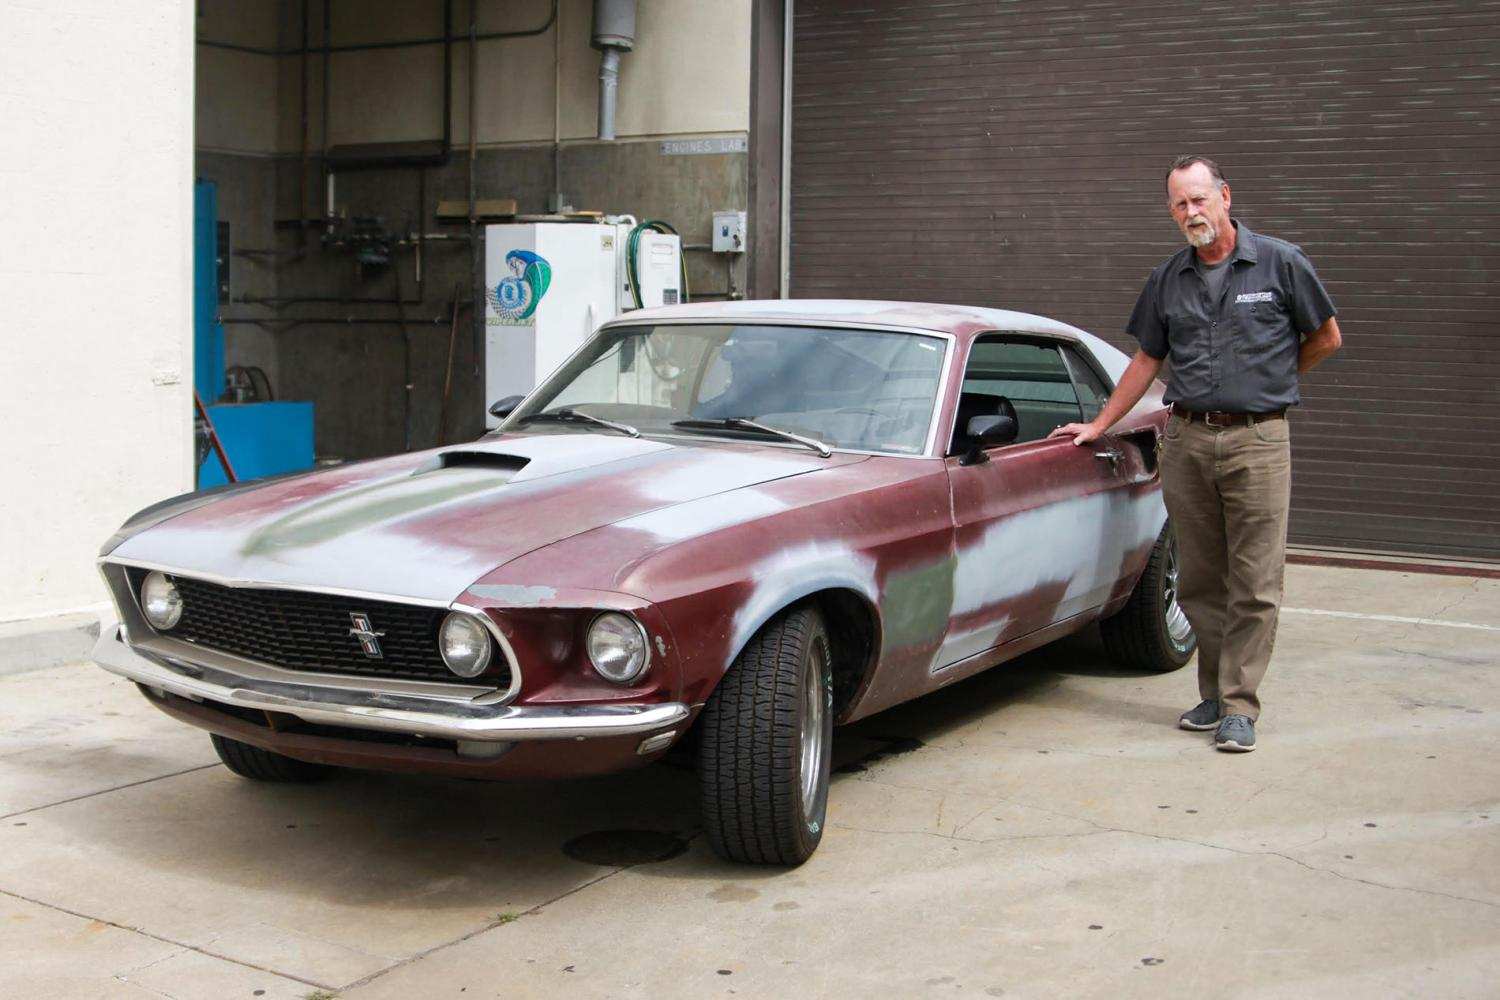 Robert+%22Bob%22+Stockero%2C+automotive+technology+department+chair%2C+poses+with+his+1969+Mustang+Fastback+on+Wednesday%2C+April+12%2C+at+the+City+College+auto+yard.+The+classic+car+is+one+of+the+vehicles+Stockero+will+work+on+restoring+during+his+retirement.